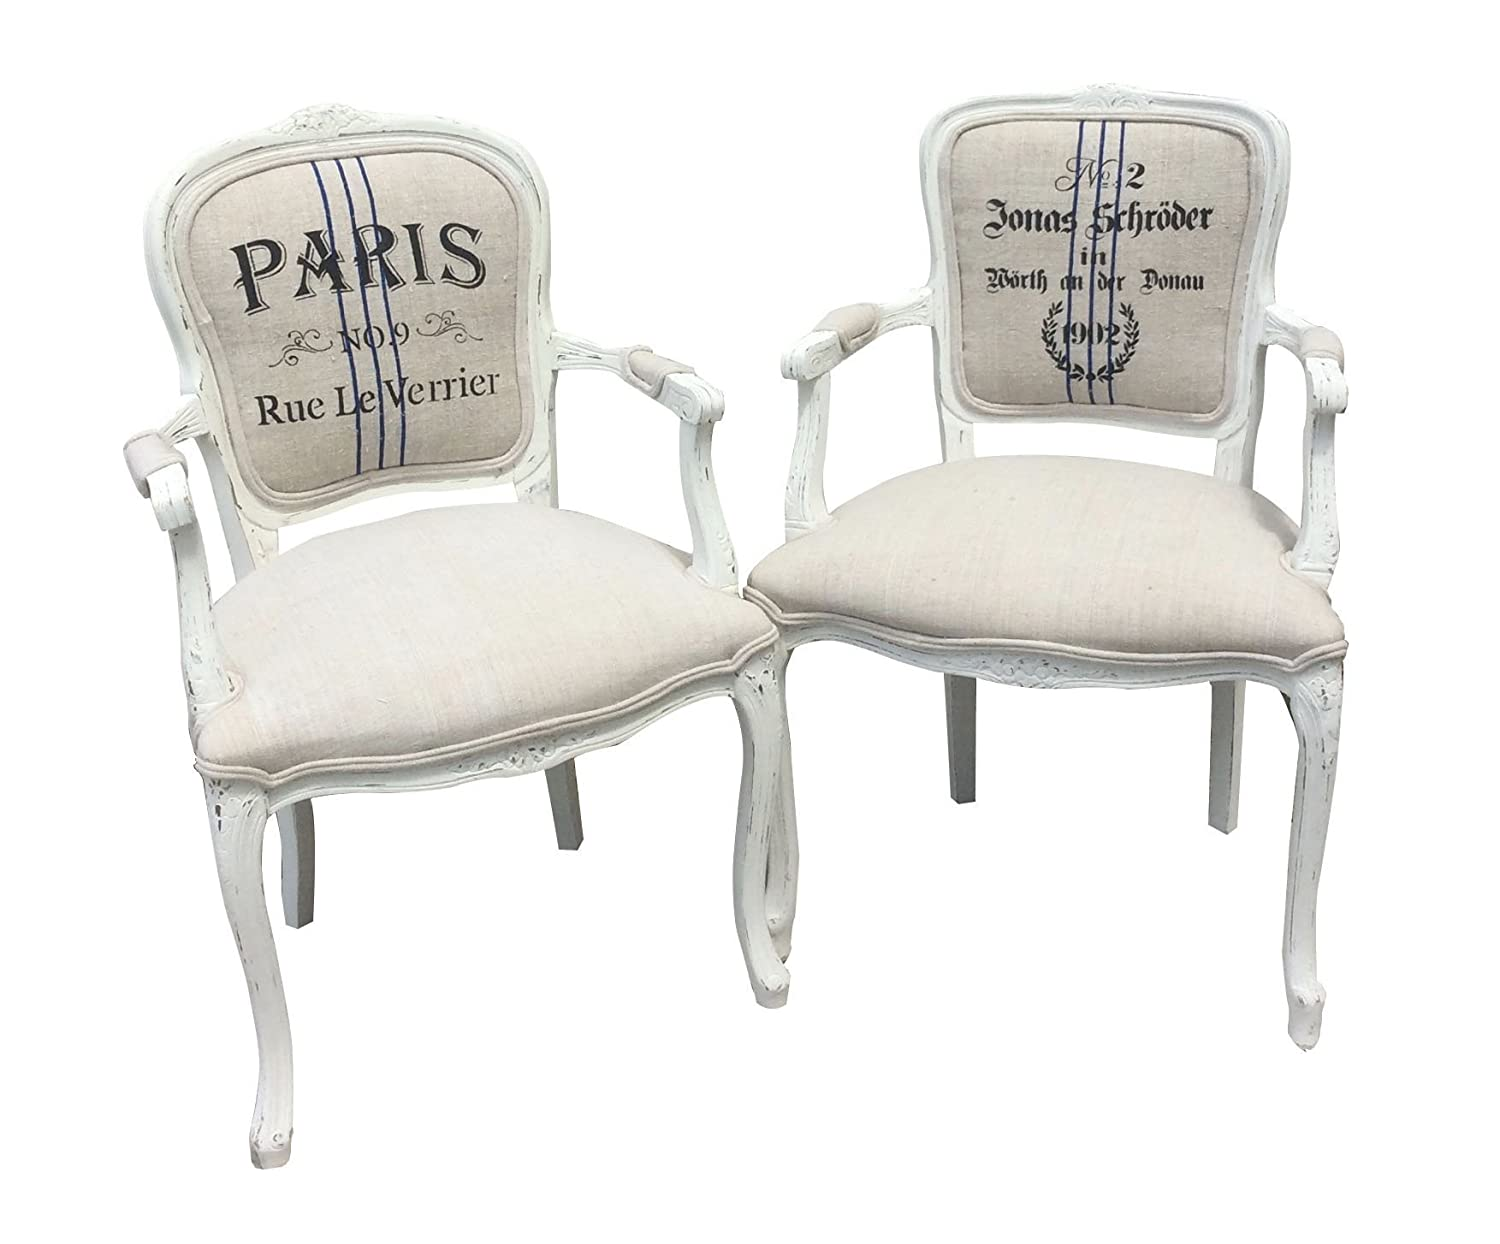 Grain sack stenciled Louis arm chair by Lilly + Co.